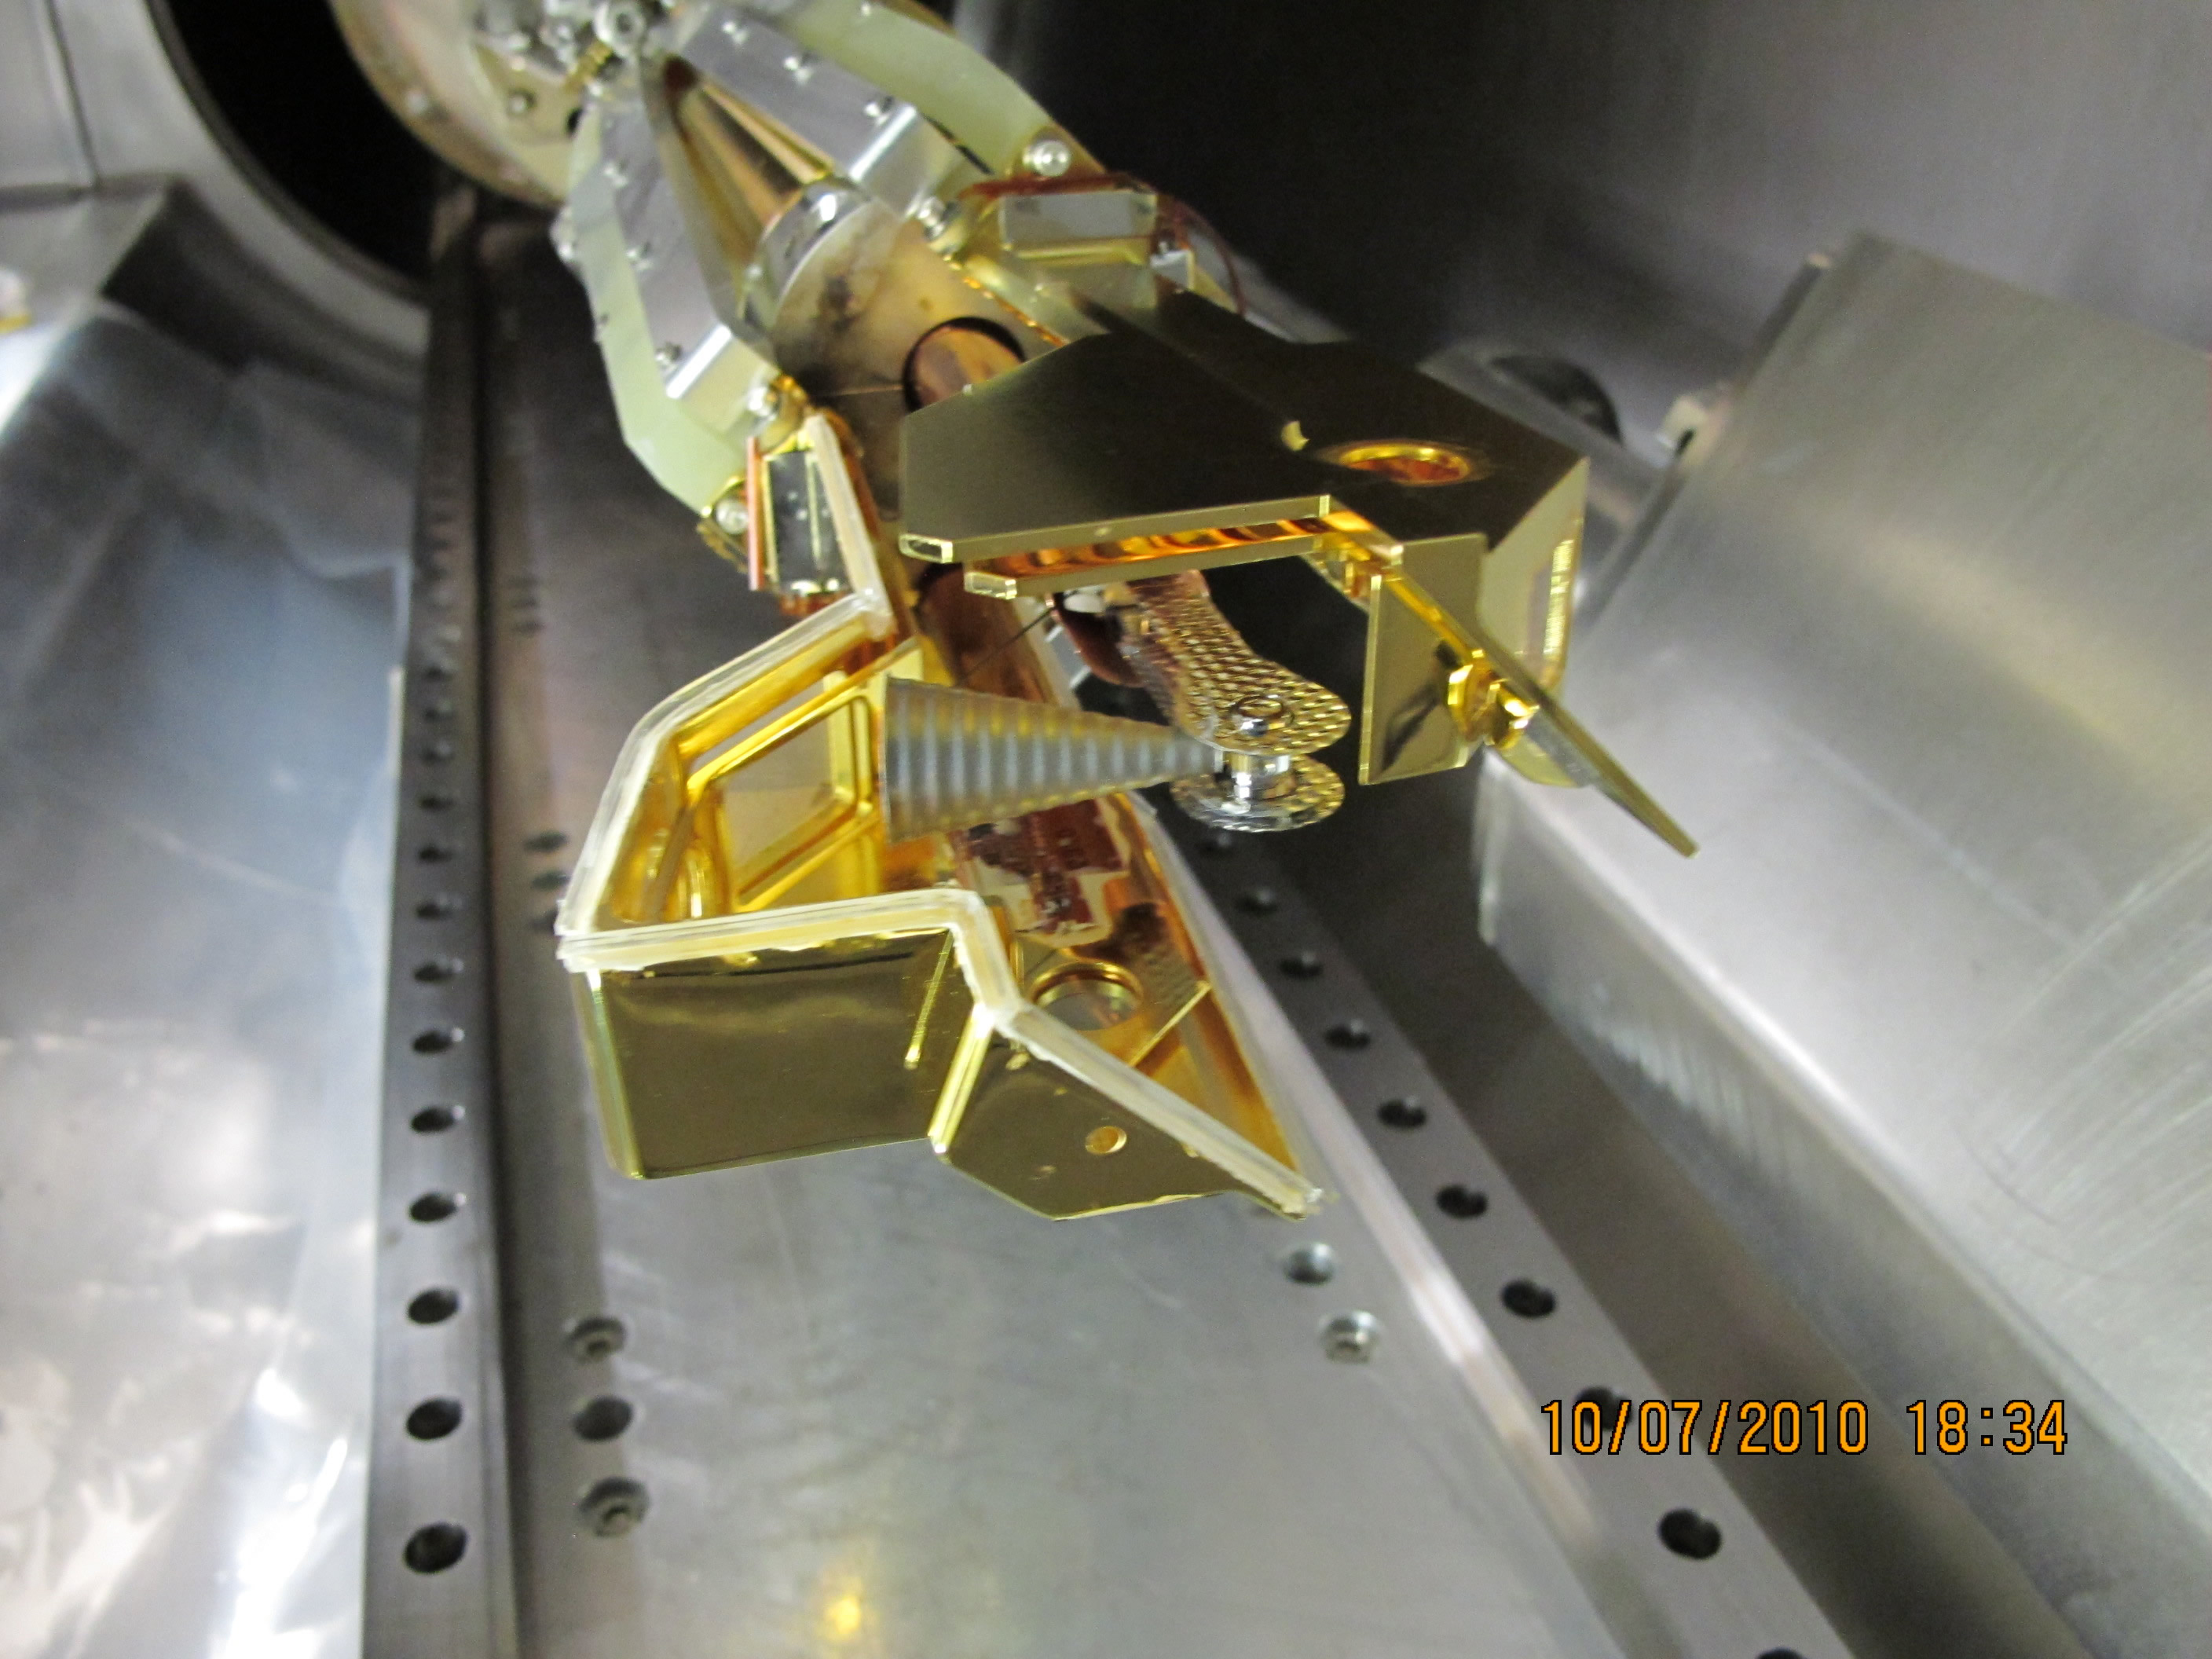 the design of hohlarum target in national ignition facility